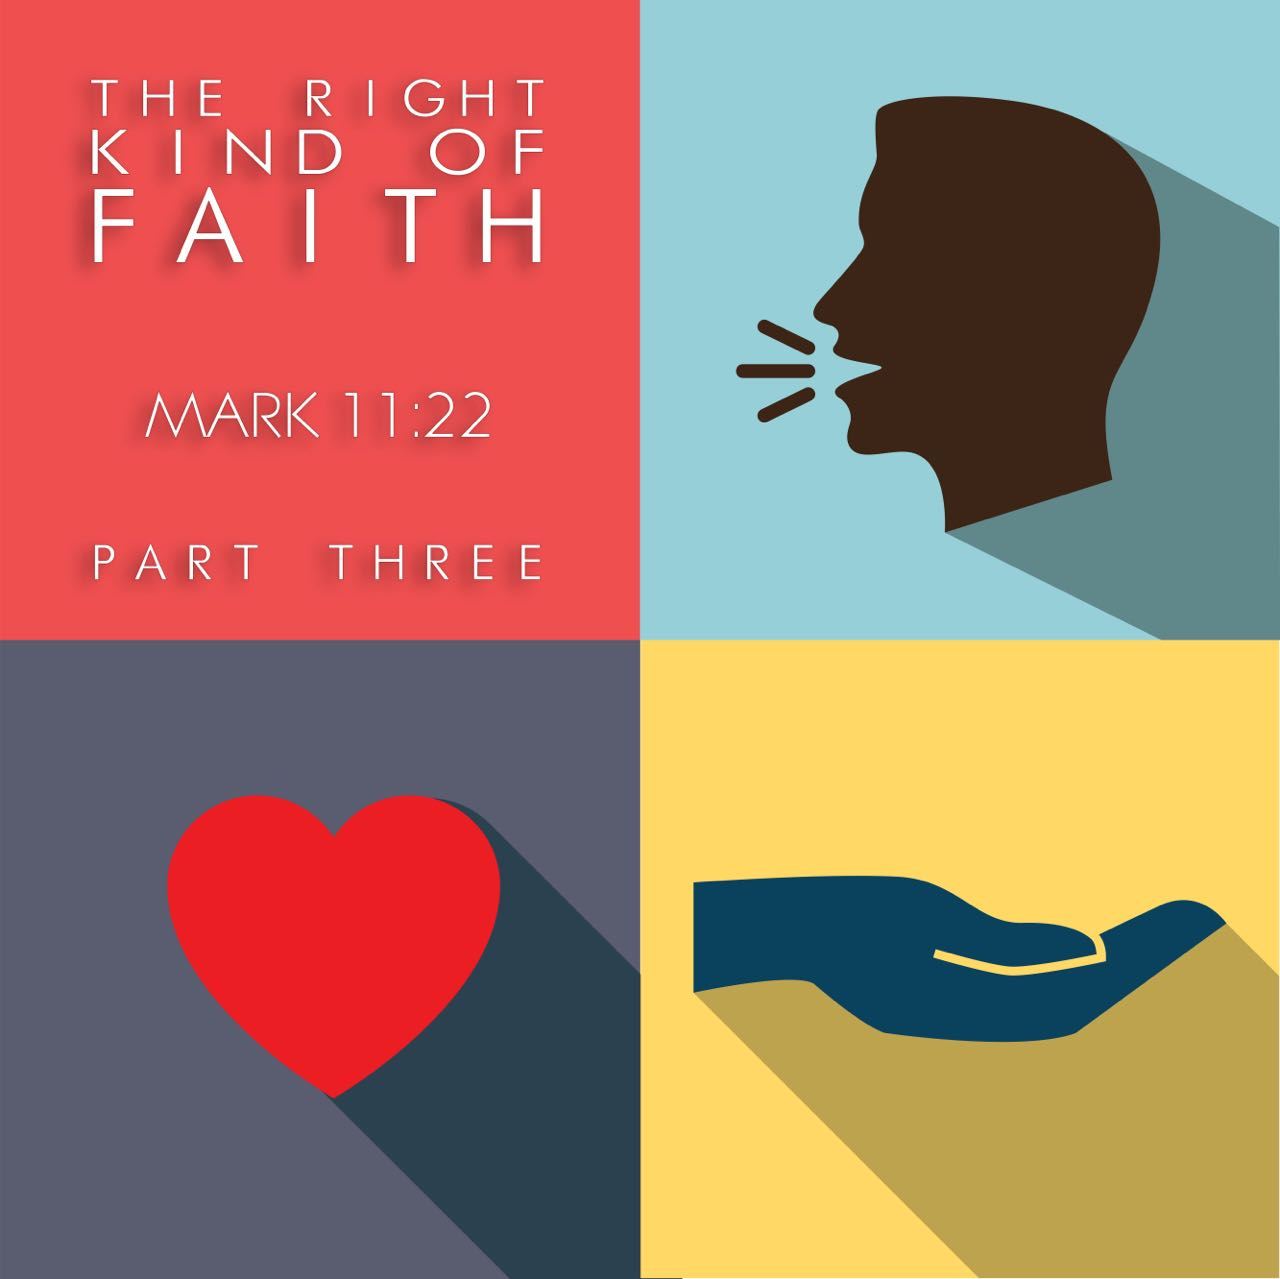 The Right Kind of Faith Part 3